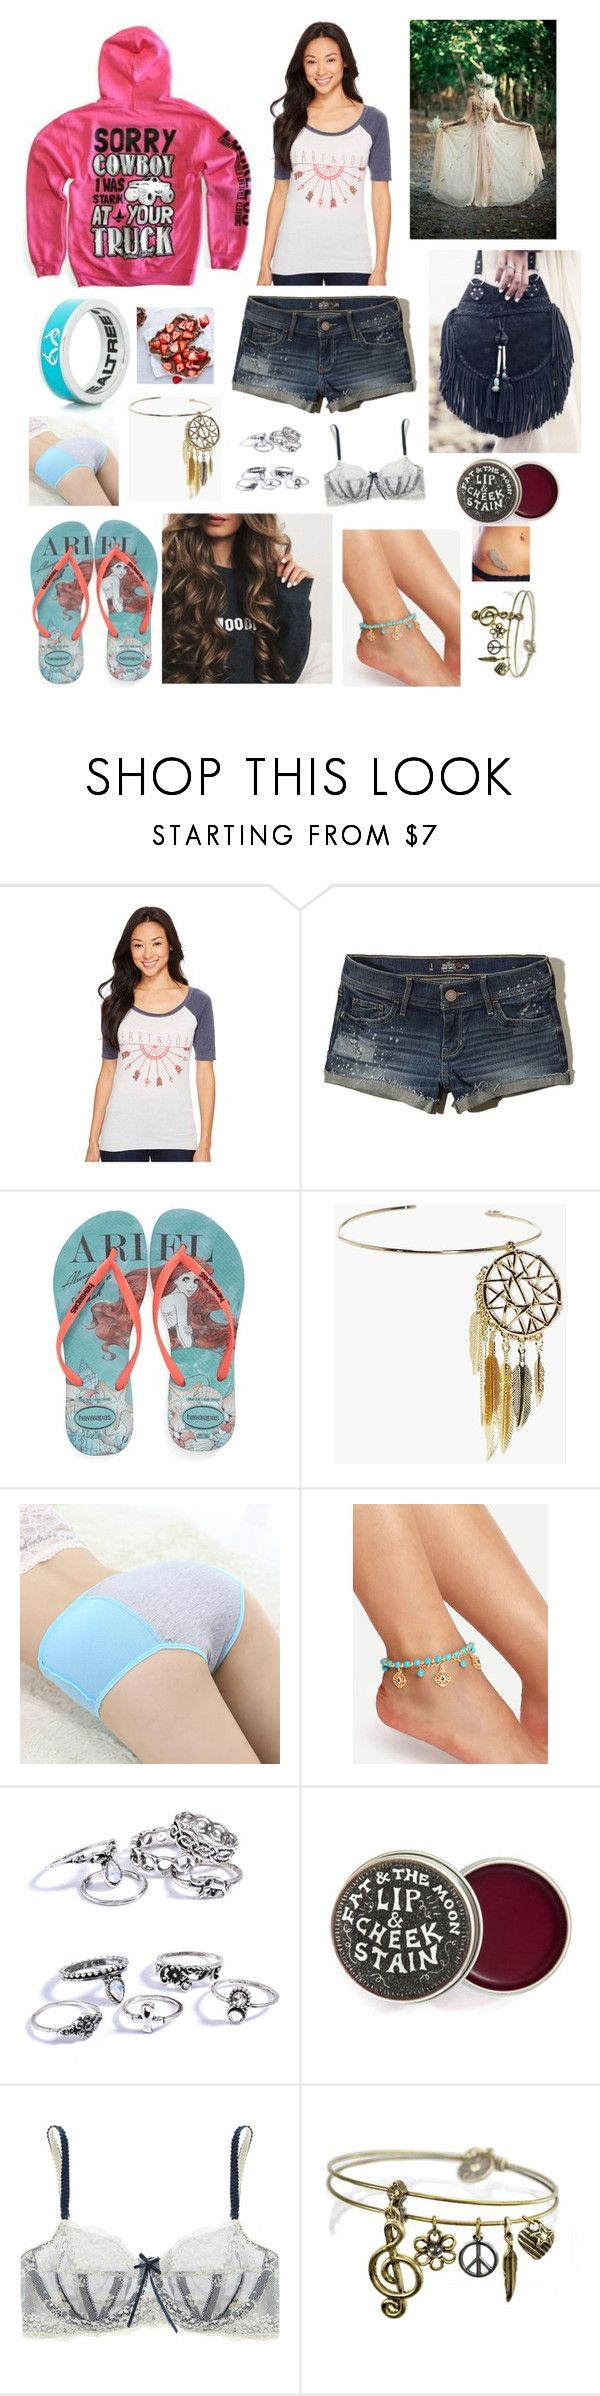 """""""Untitled #1313"""" by gigglyhemmo16 ❤ liked on Polyvore featuring Rock & Roll Cowgirl, Hollister Co., Havaianas, Victoria's Secret, Boohoo, Elle Macpherson Intimates and Sweet Romance"""